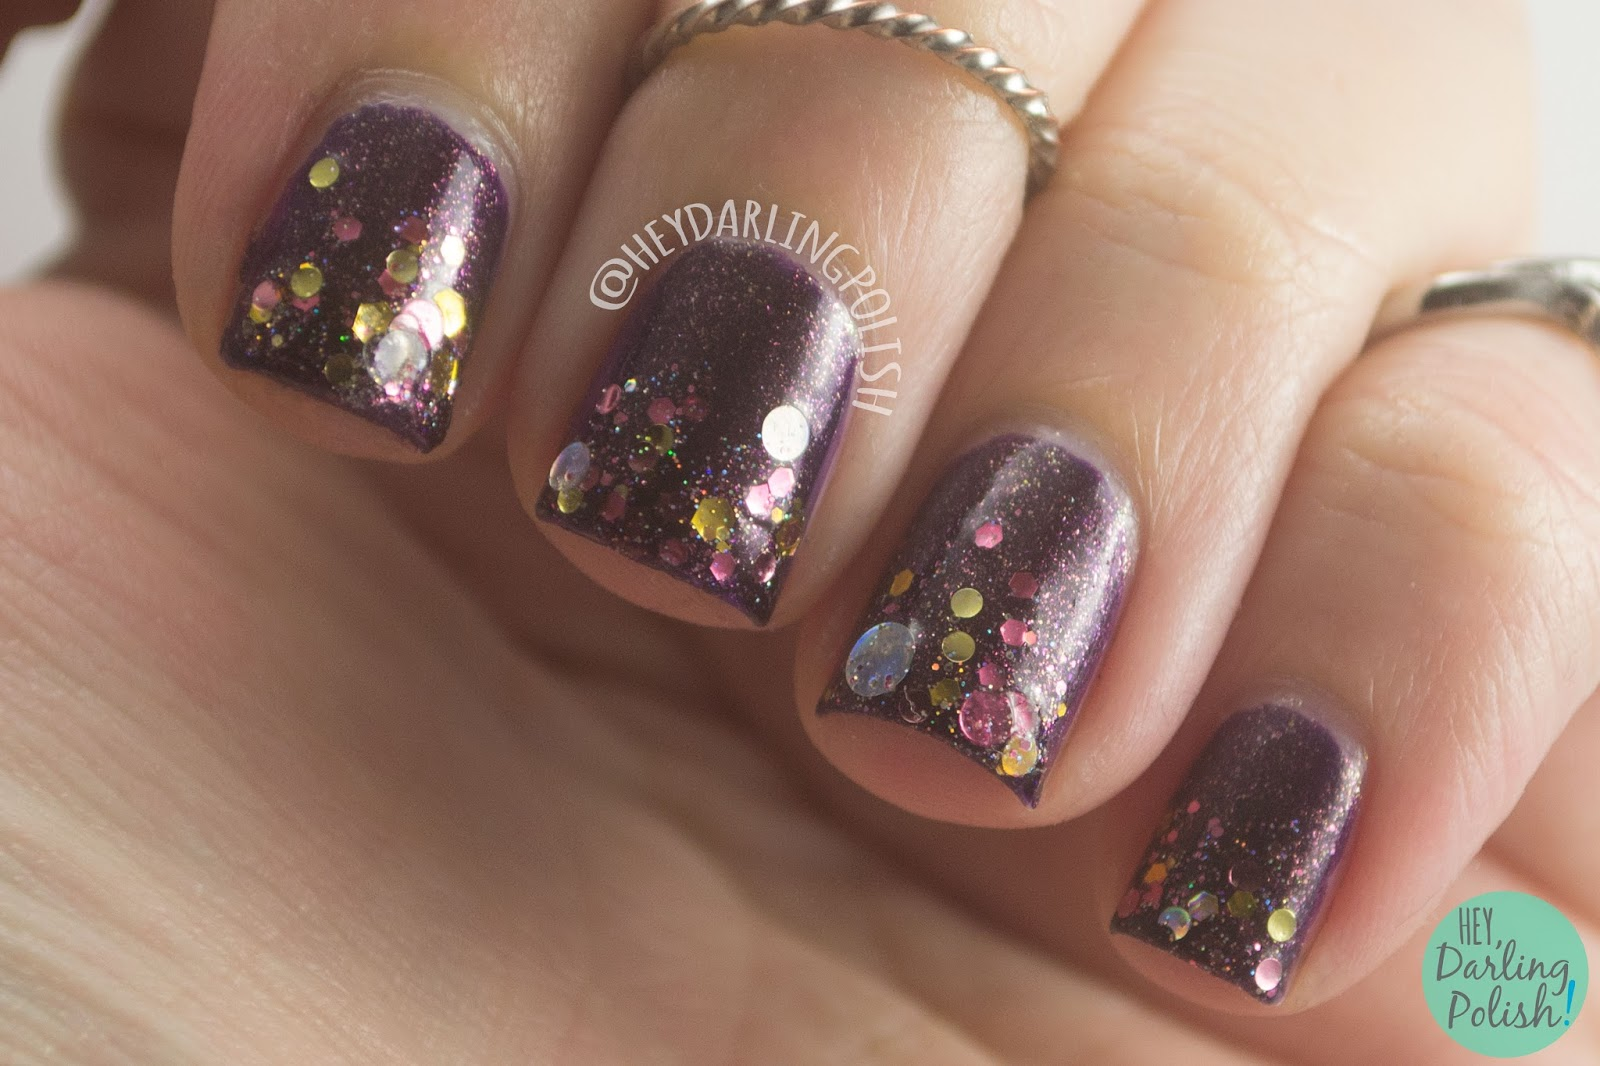 glitter gradient, toast-ess with the mostest, purple, sparkle, nails, nail polish, indie, indie polish, indie nail polish, kbshimmer, hey darling polish, glitter